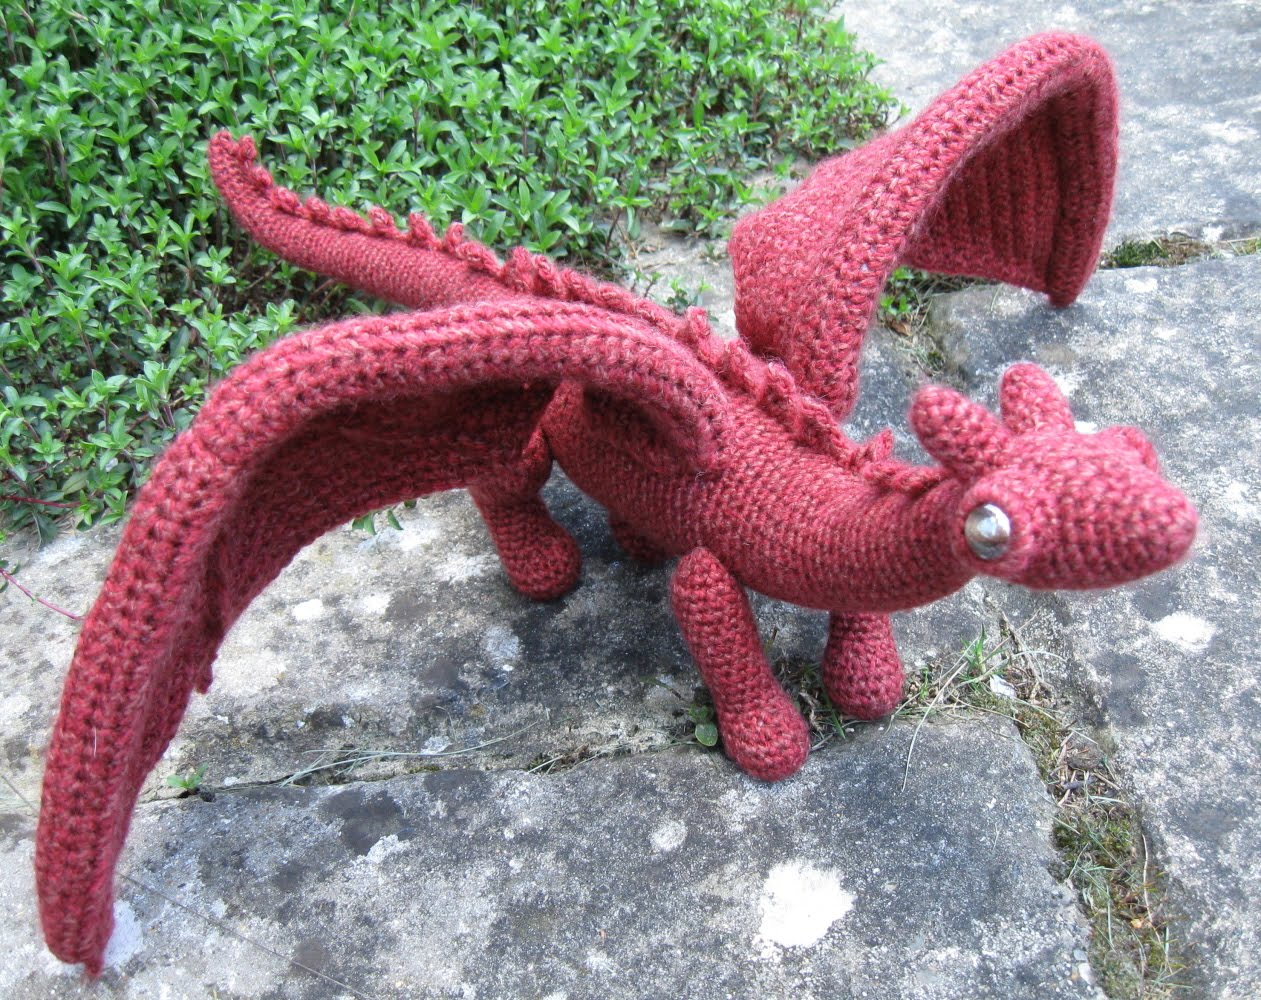 Knit Dragon Pattern : LucyRavenscar - Crochet Creatures: My patterns for sale on Etsy